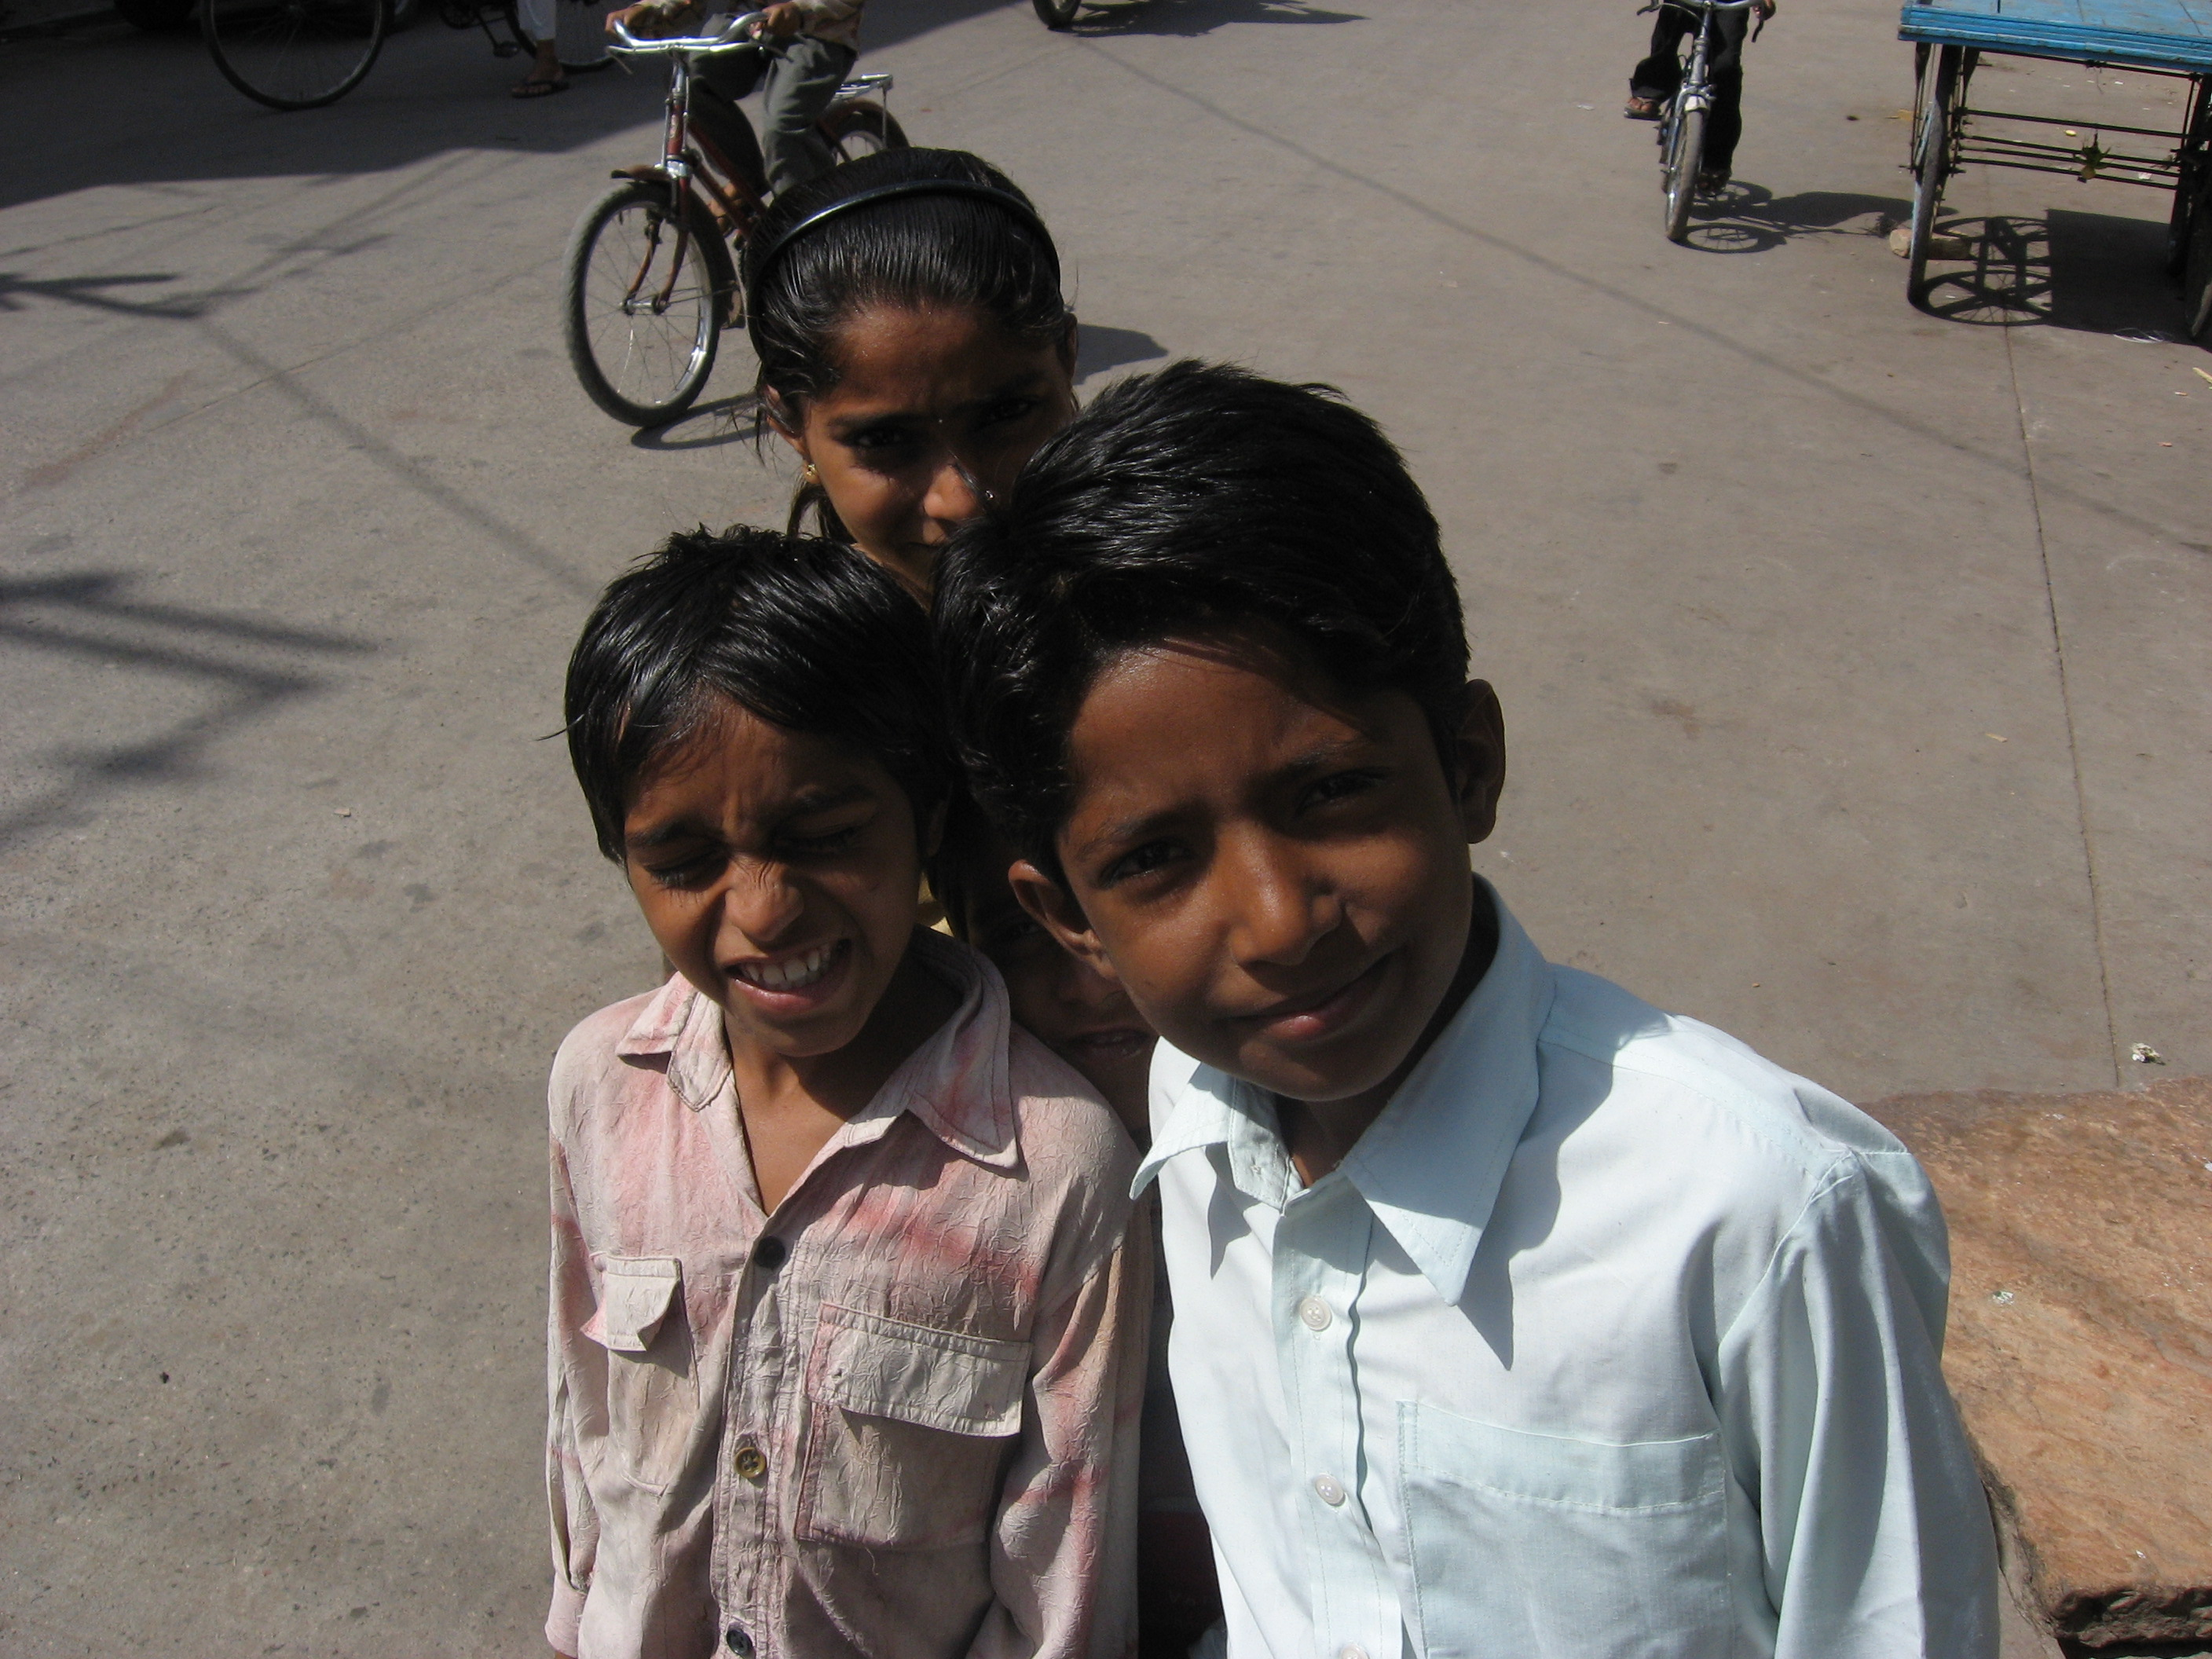 Jodhpur children